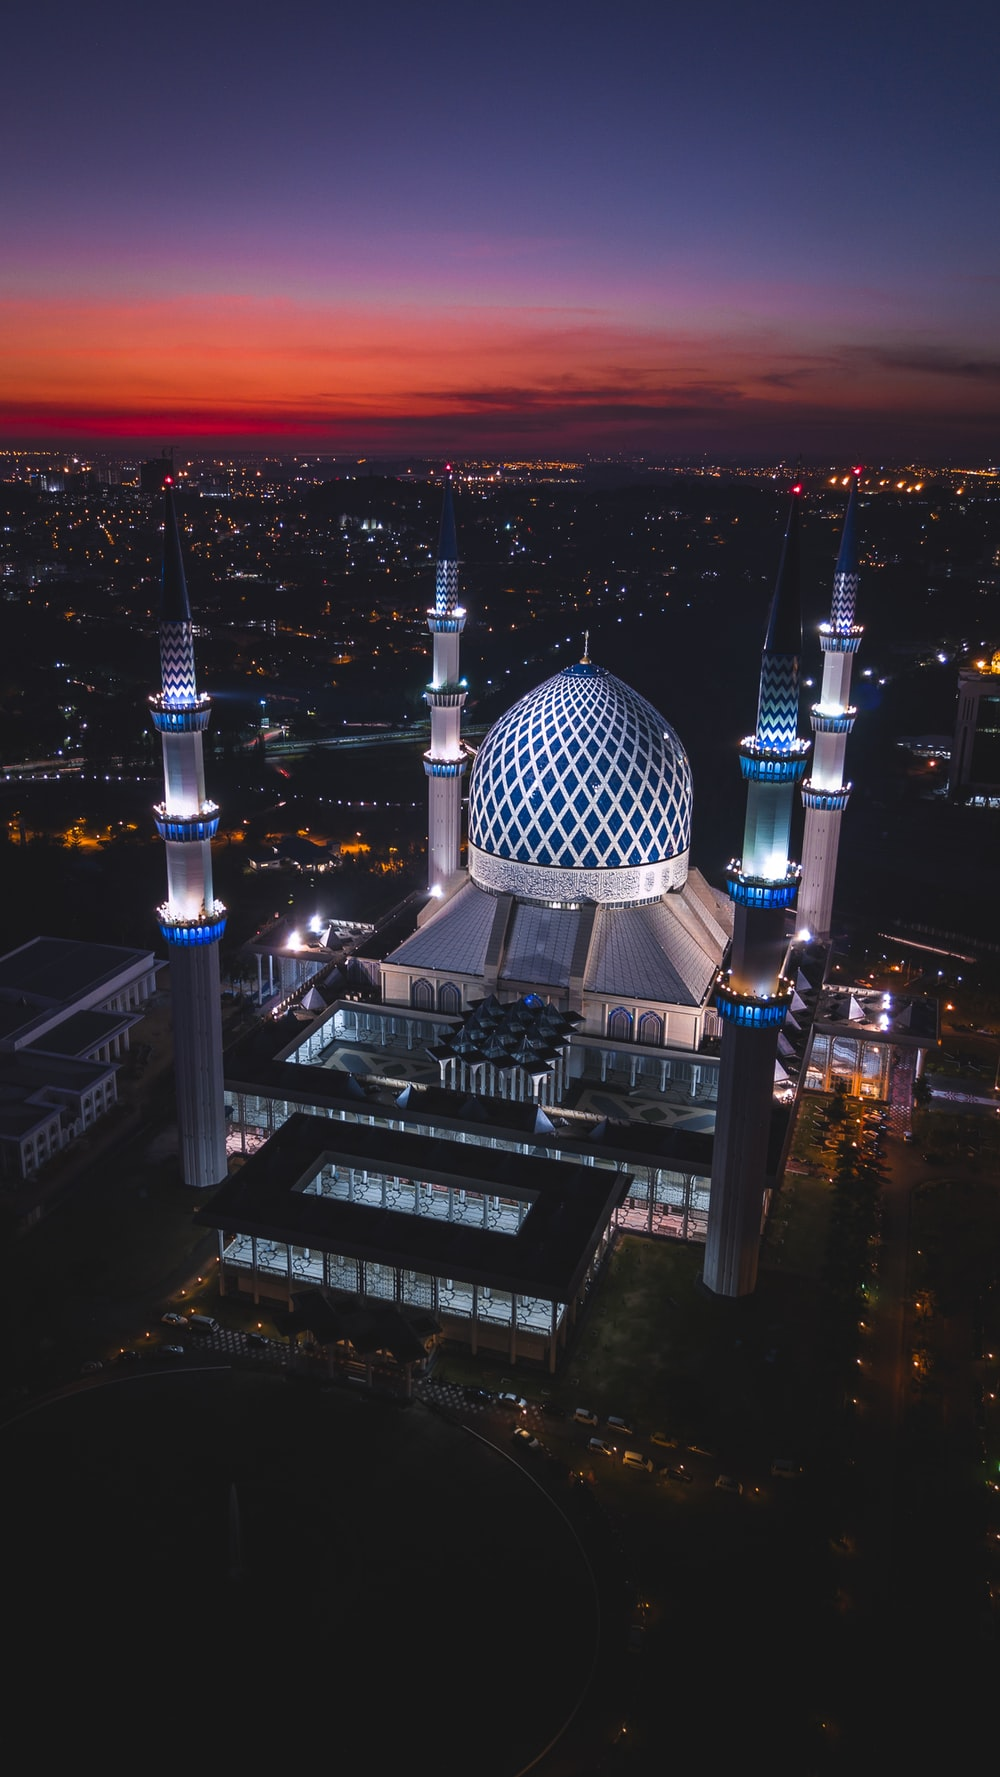 350 Mosque Pictures Hd Download Free Images On Unsplash